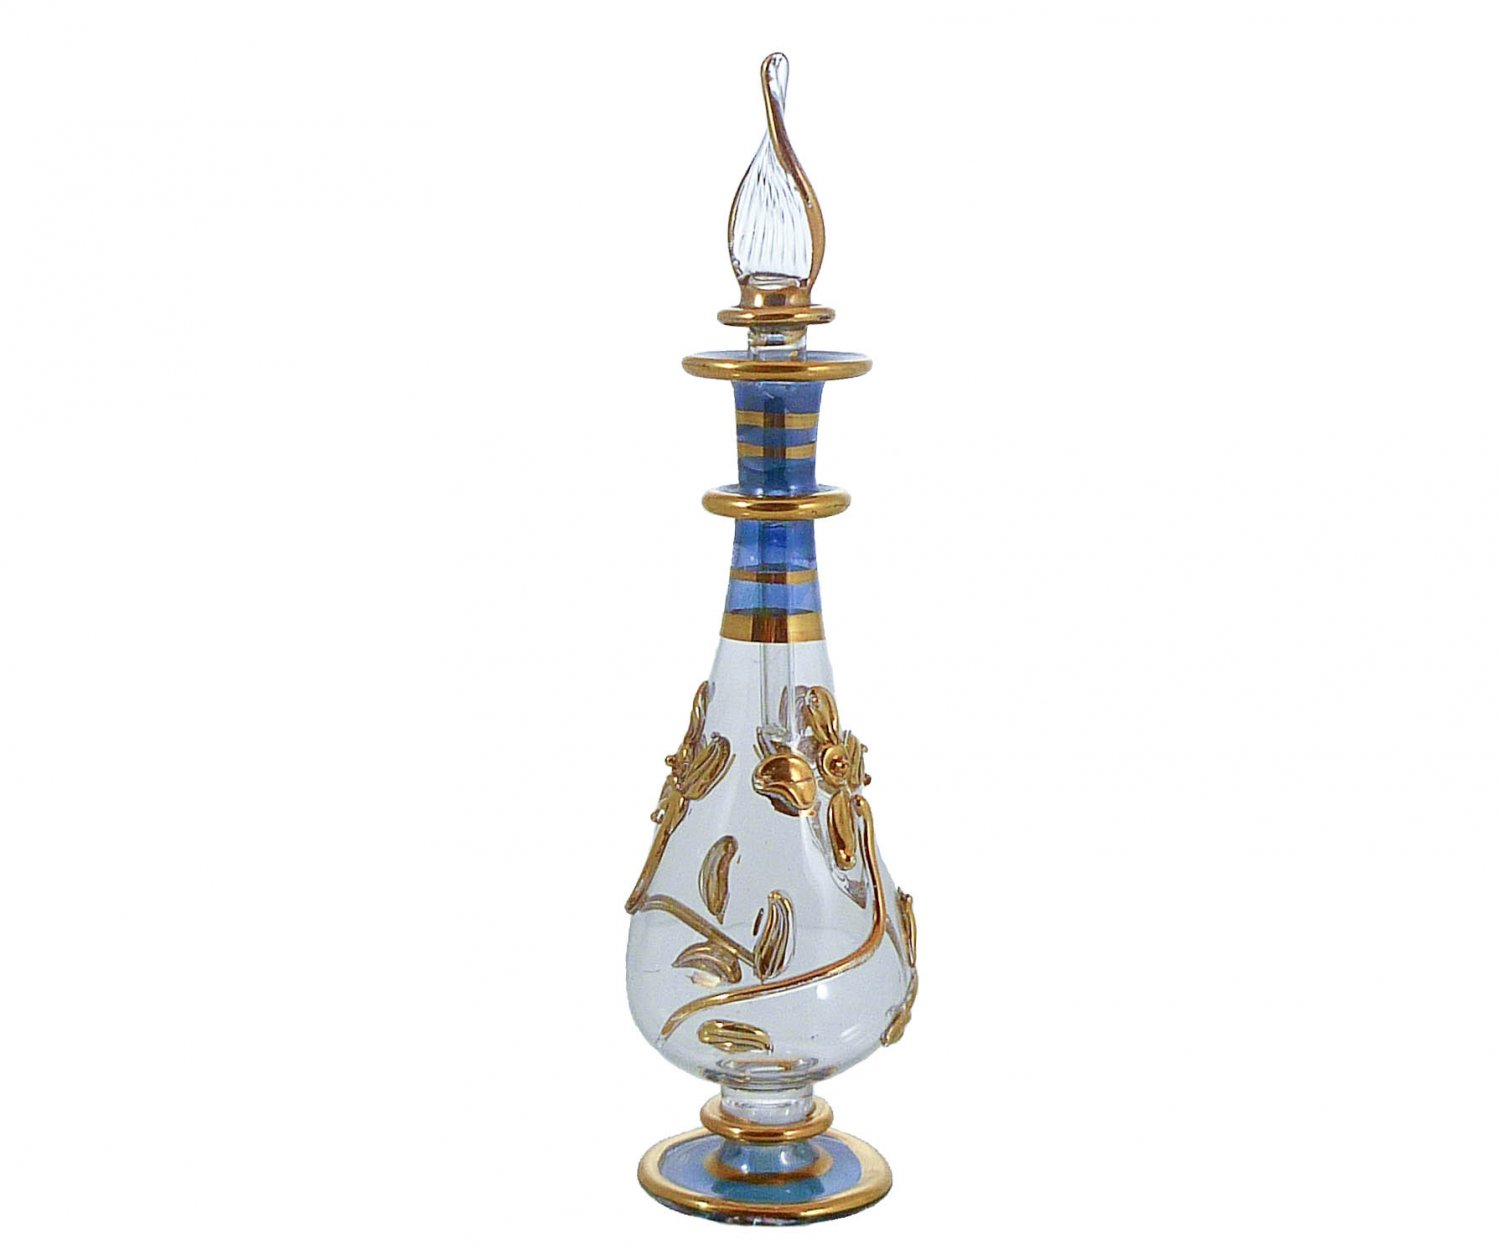 Blue Gold-Gilded Mouth-Blown Perfume Bottle